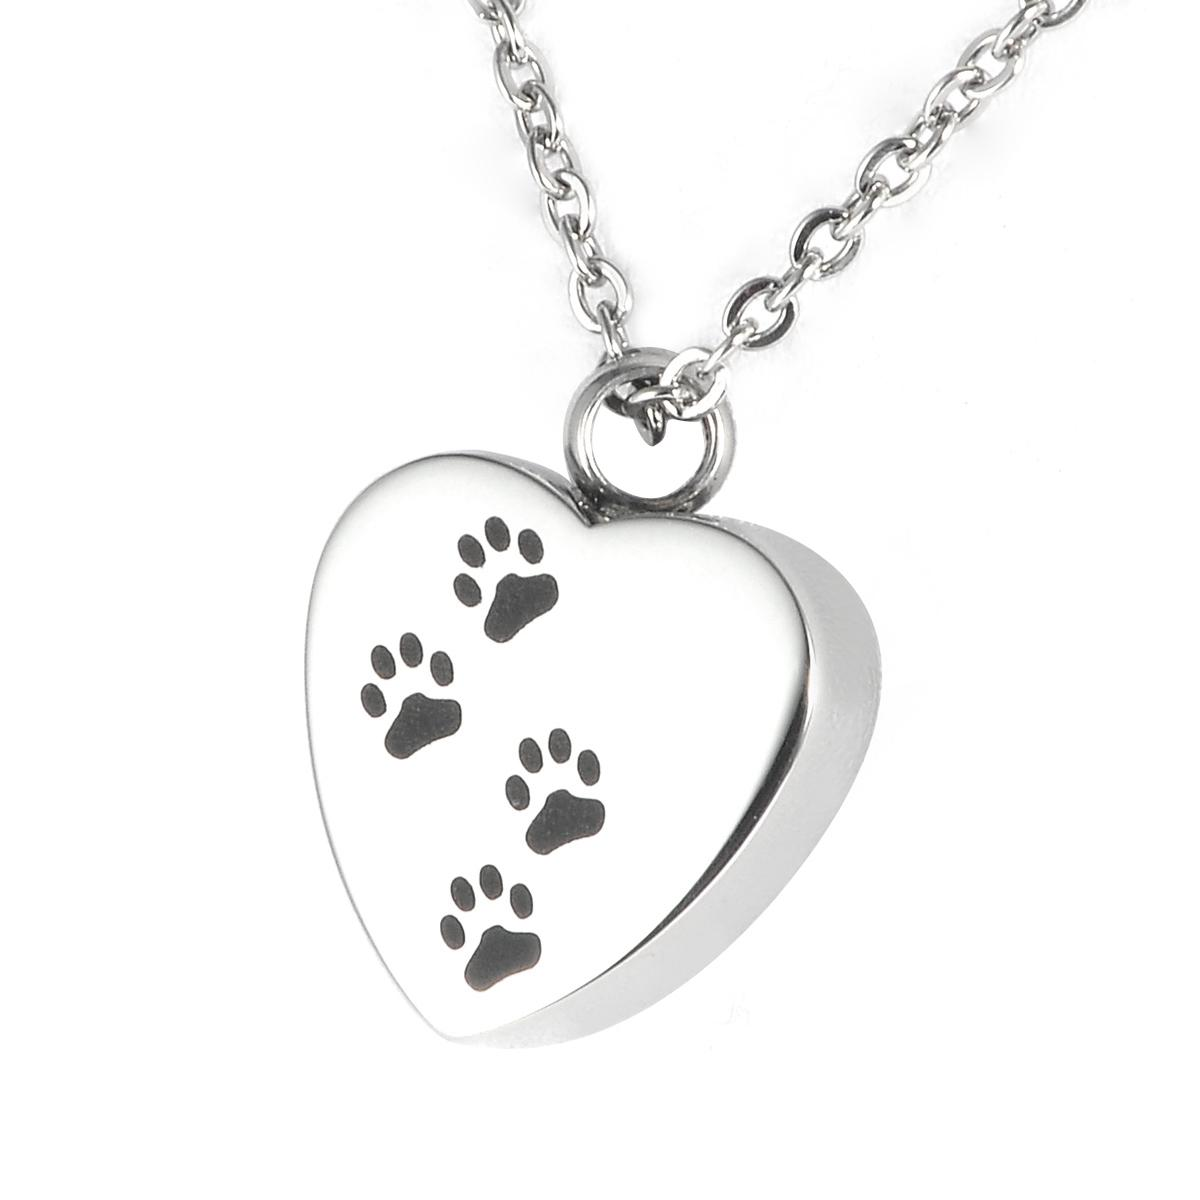 Heart/Paw print Stainless Steel Urn Pendant with Chain - 18